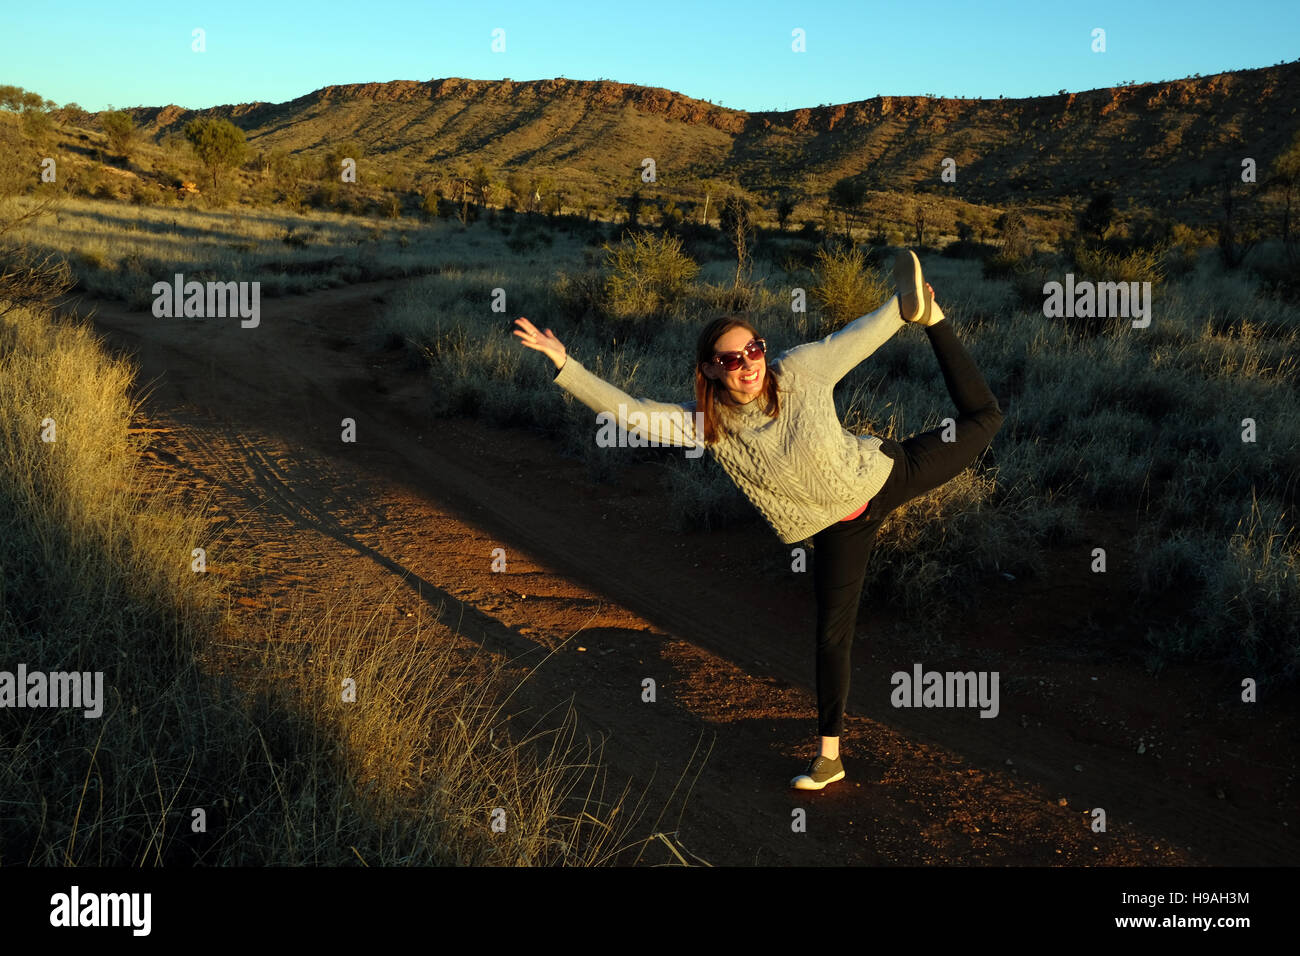 A woman stretches her legs and arms in front of the MacDonnell Ranges, Alice Springs, Northern territory, Central - Stock Image